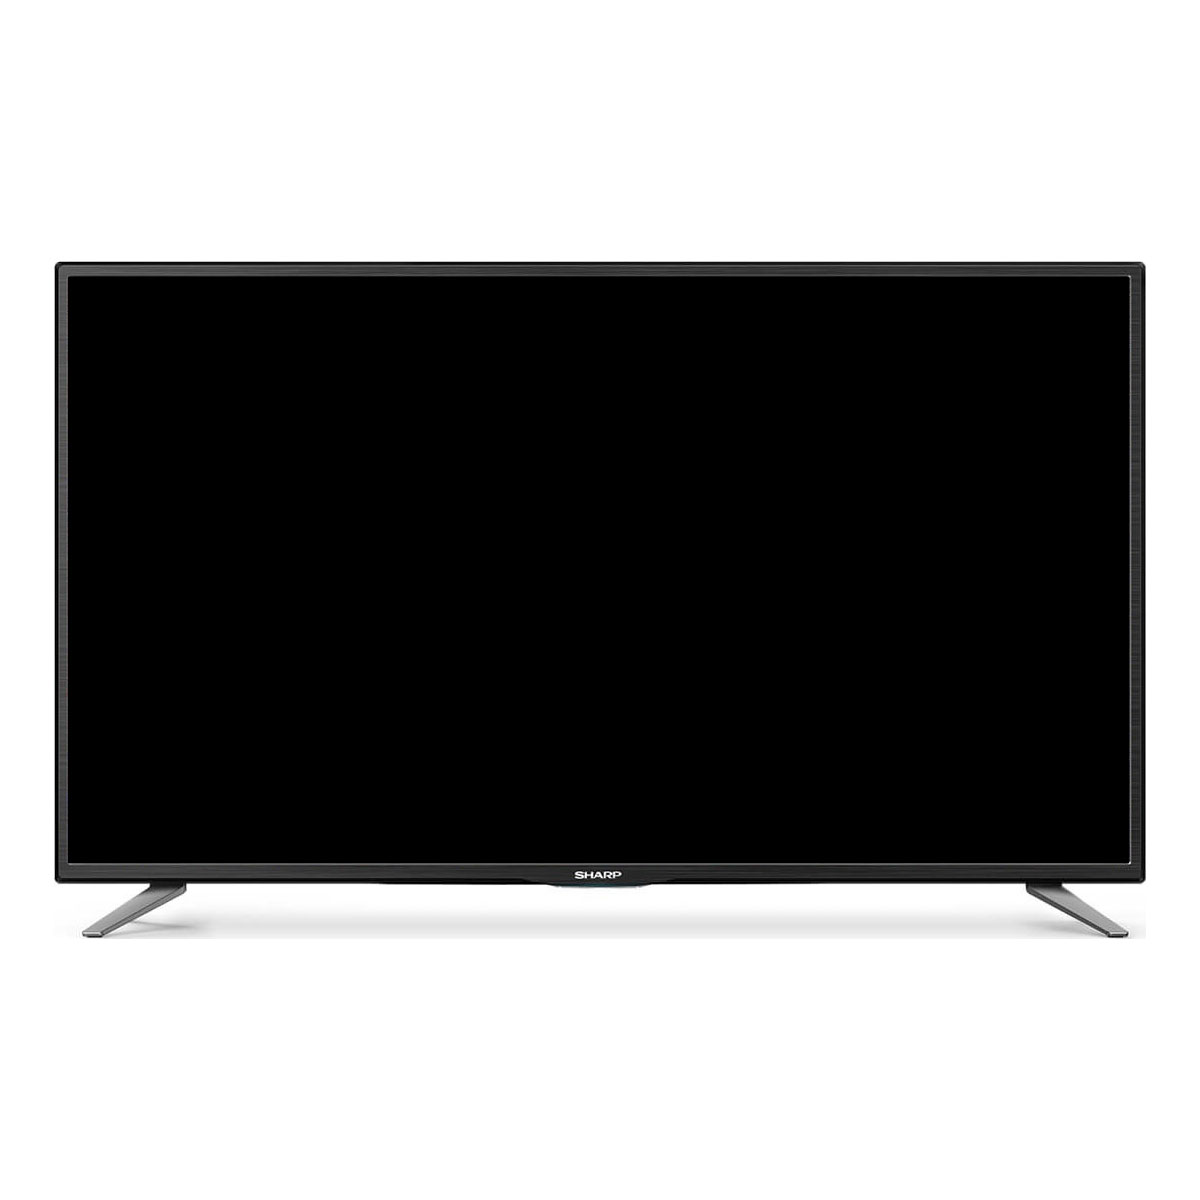 sharp aquos lc 32cfe6131k 32 smart led tv full hd 1080p wifi freeview hd hdmi ebay. Black Bedroom Furniture Sets. Home Design Ideas